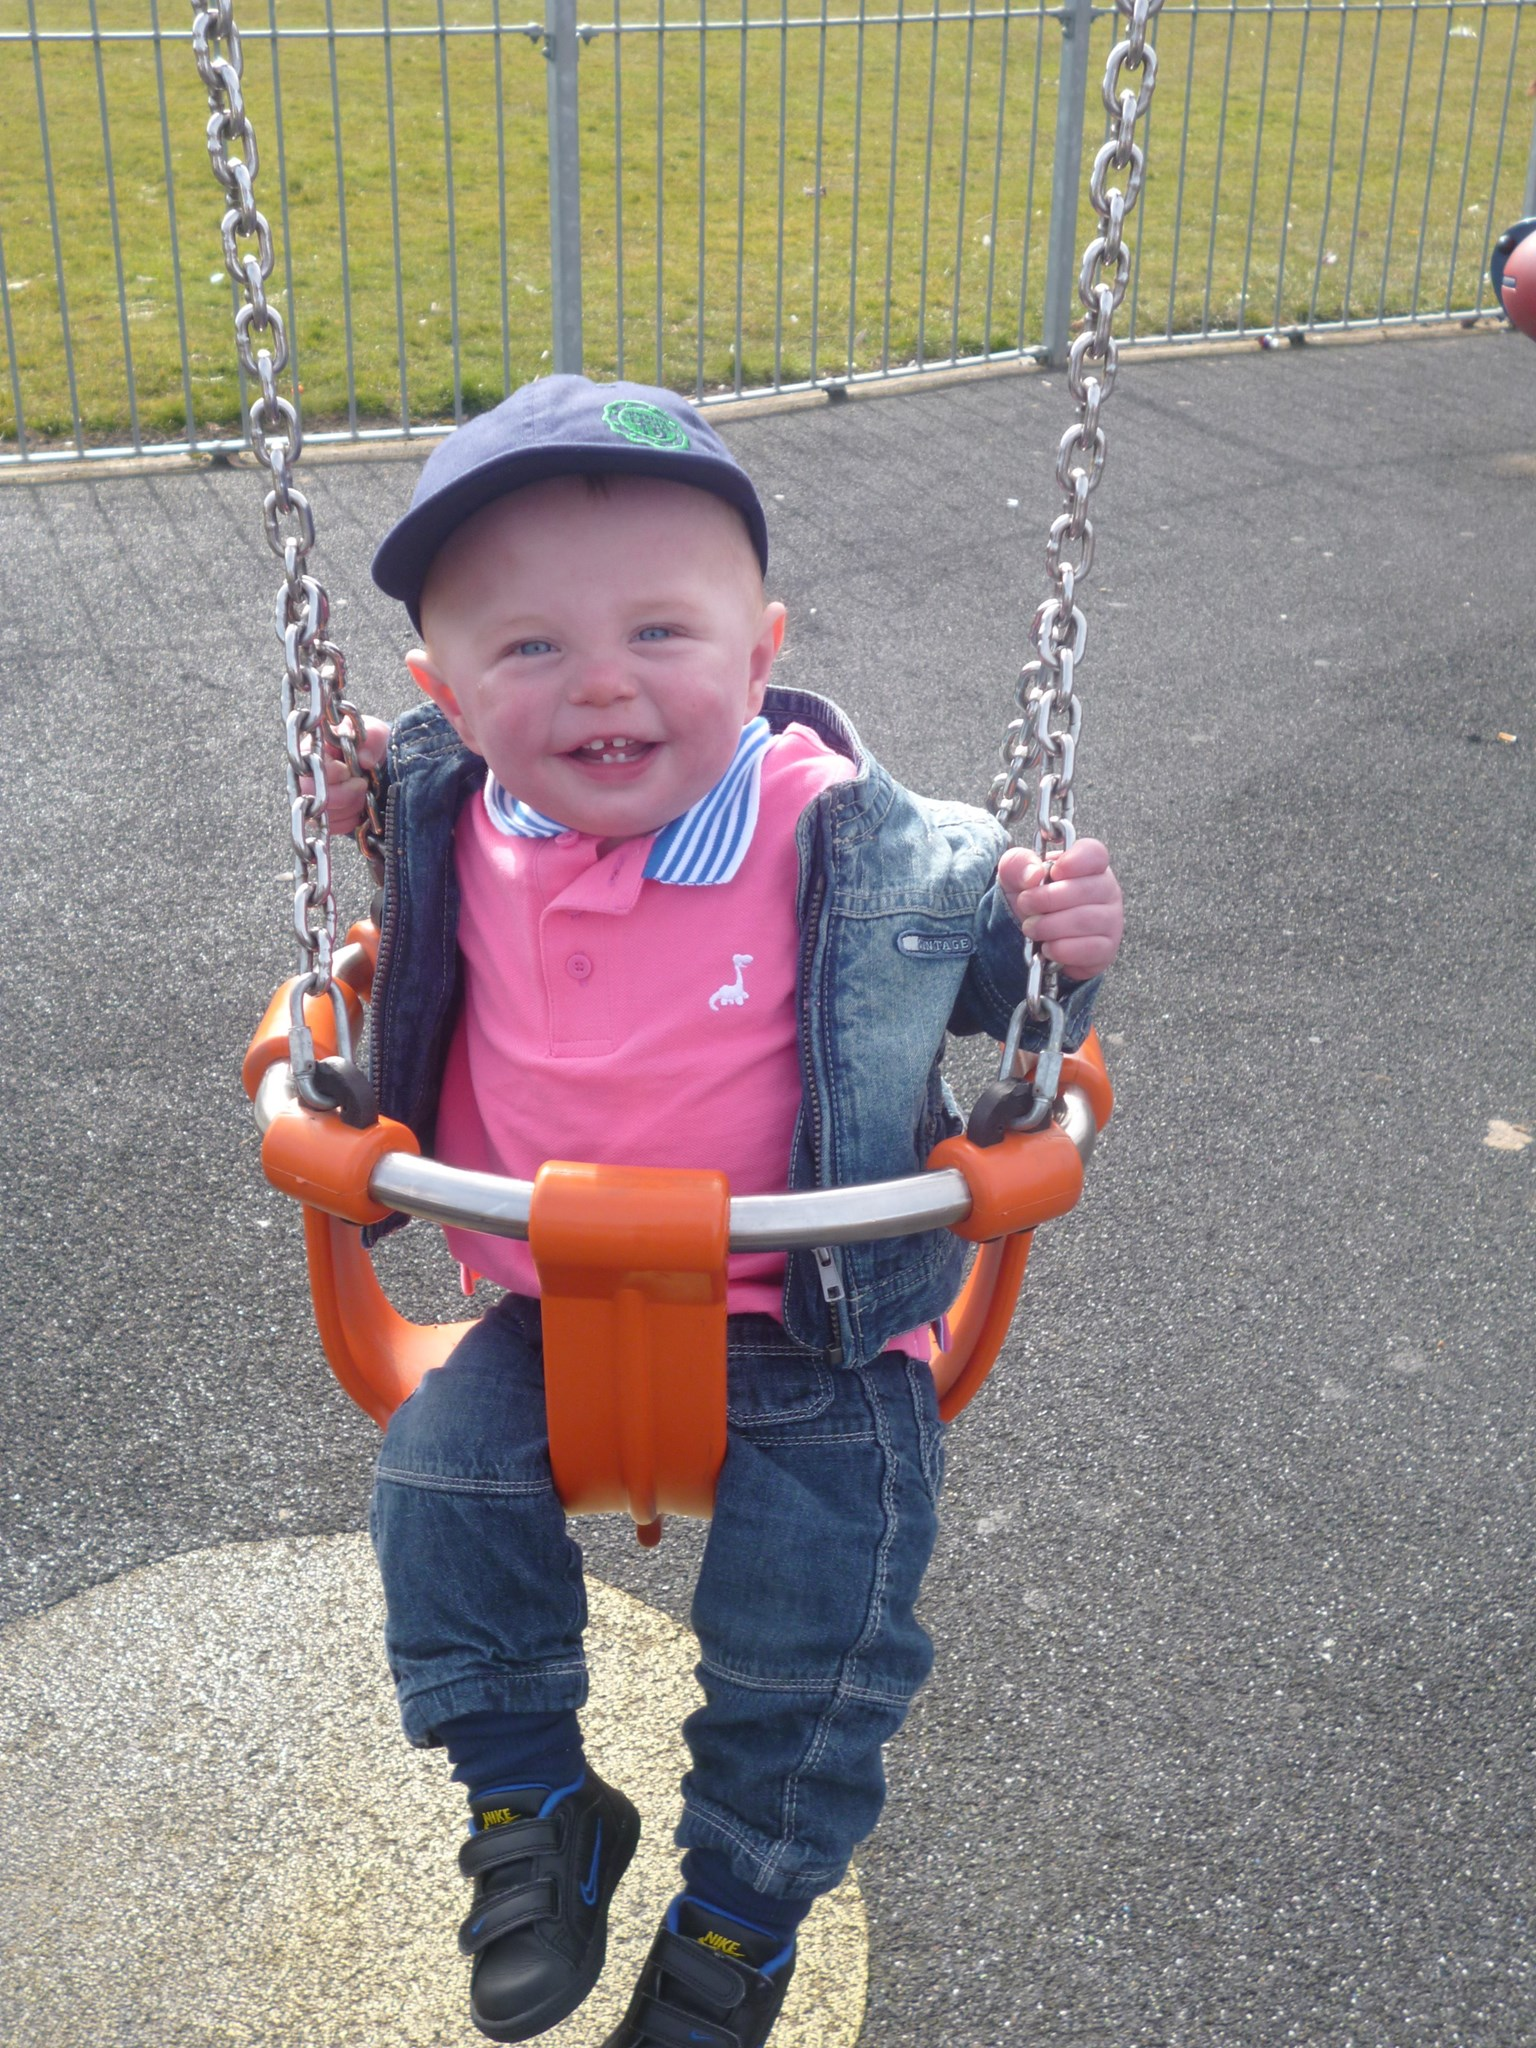 William having fun at the park aged 10 months